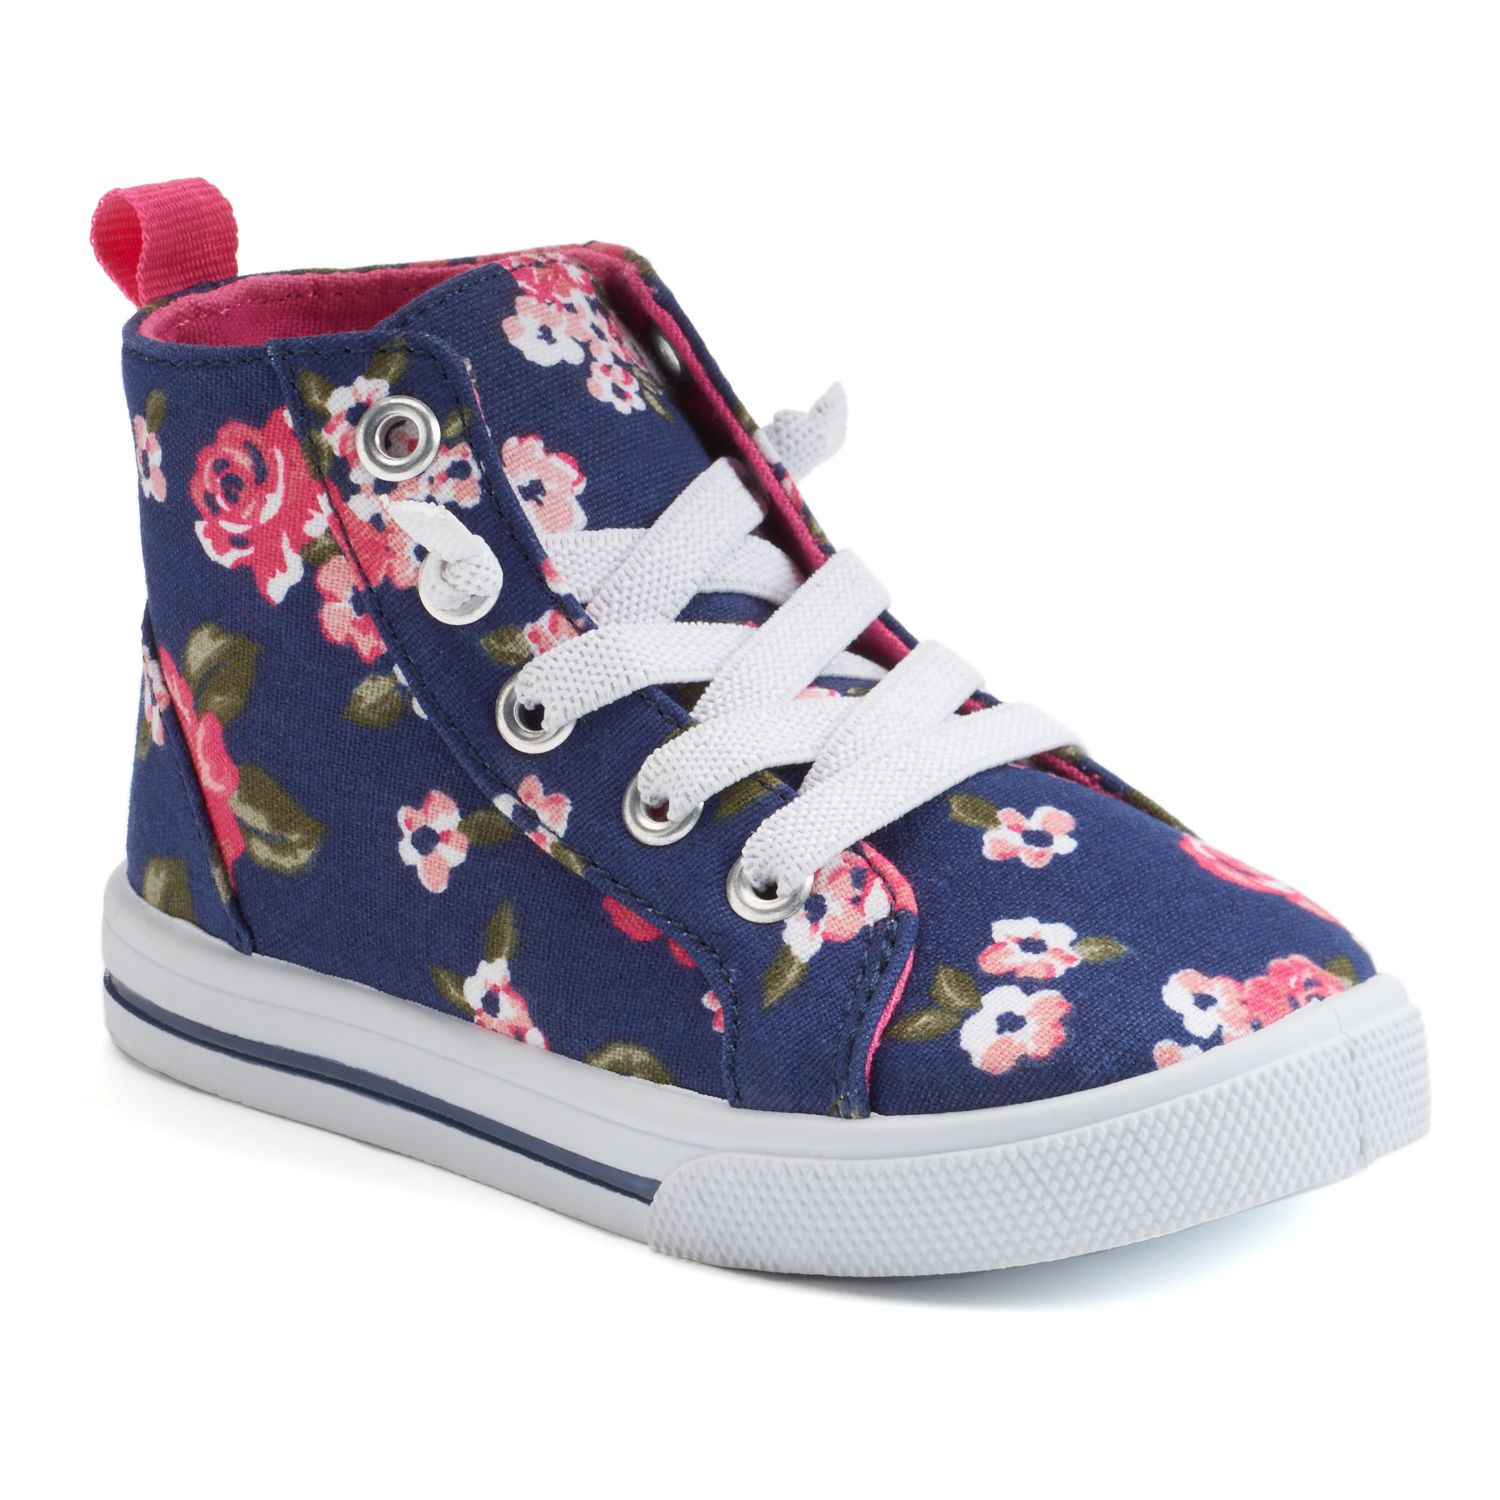 adidas shoes high tops for girls. adidas shoes high tops for girls